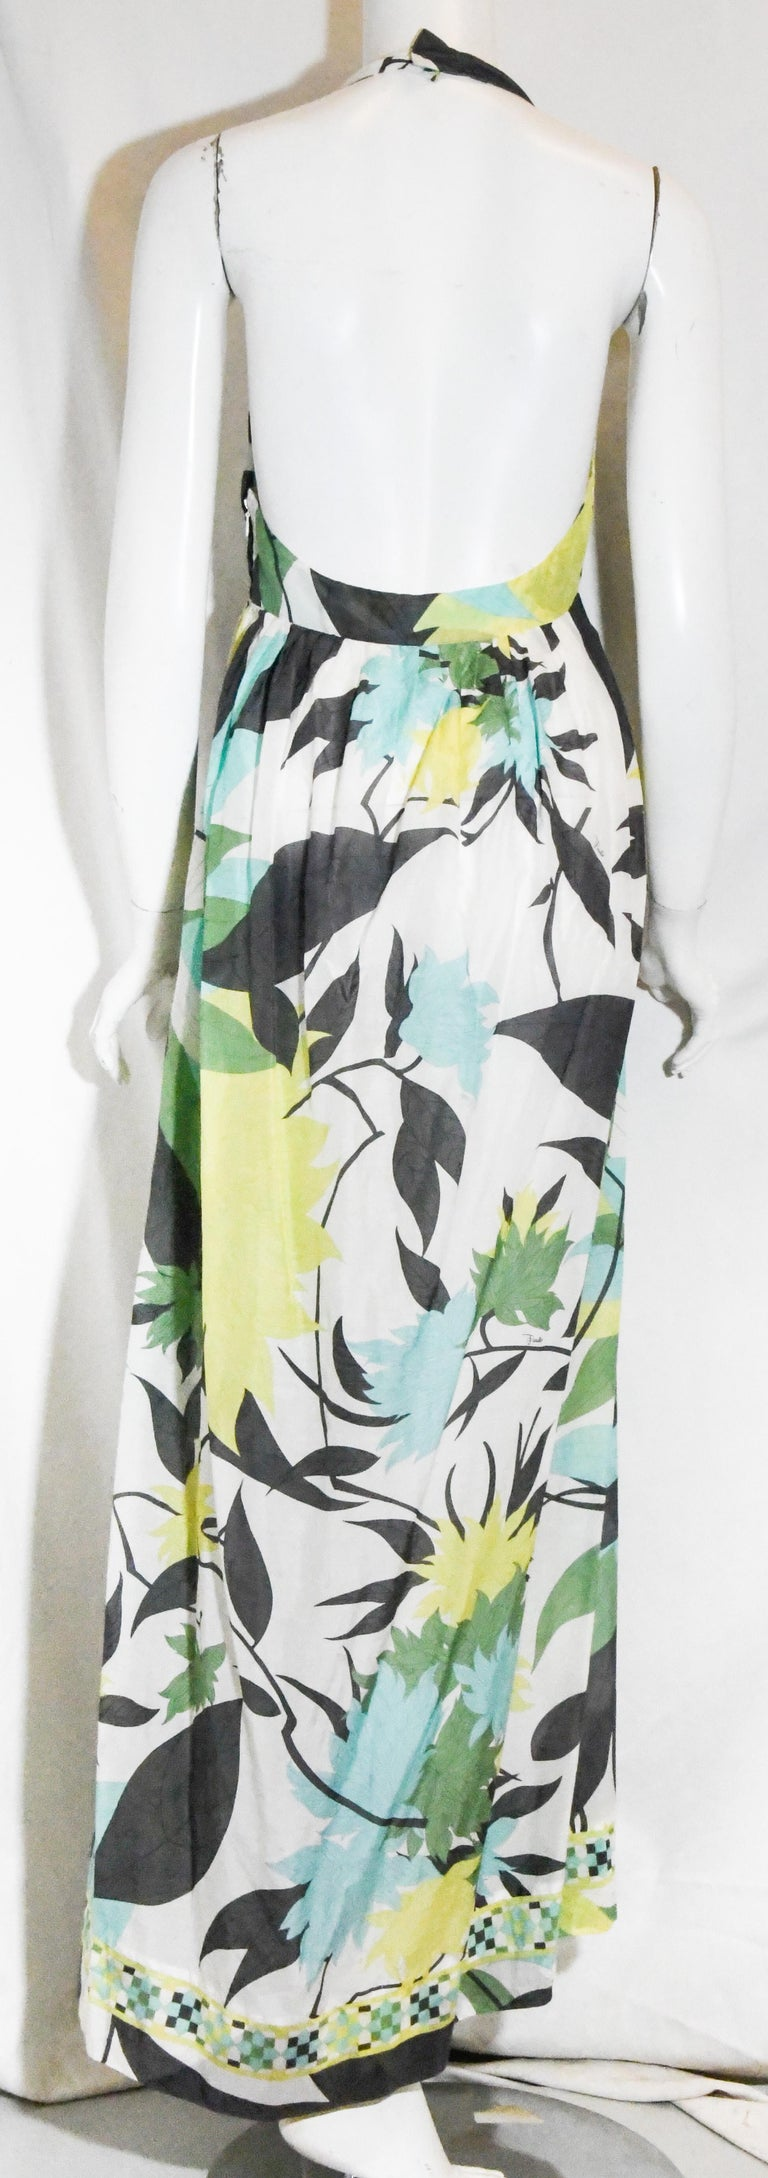 Emilio Pucci Halter V Neck Floral Print Backless Long Dress  In Excellent Condition For Sale In Palm Beach, FL